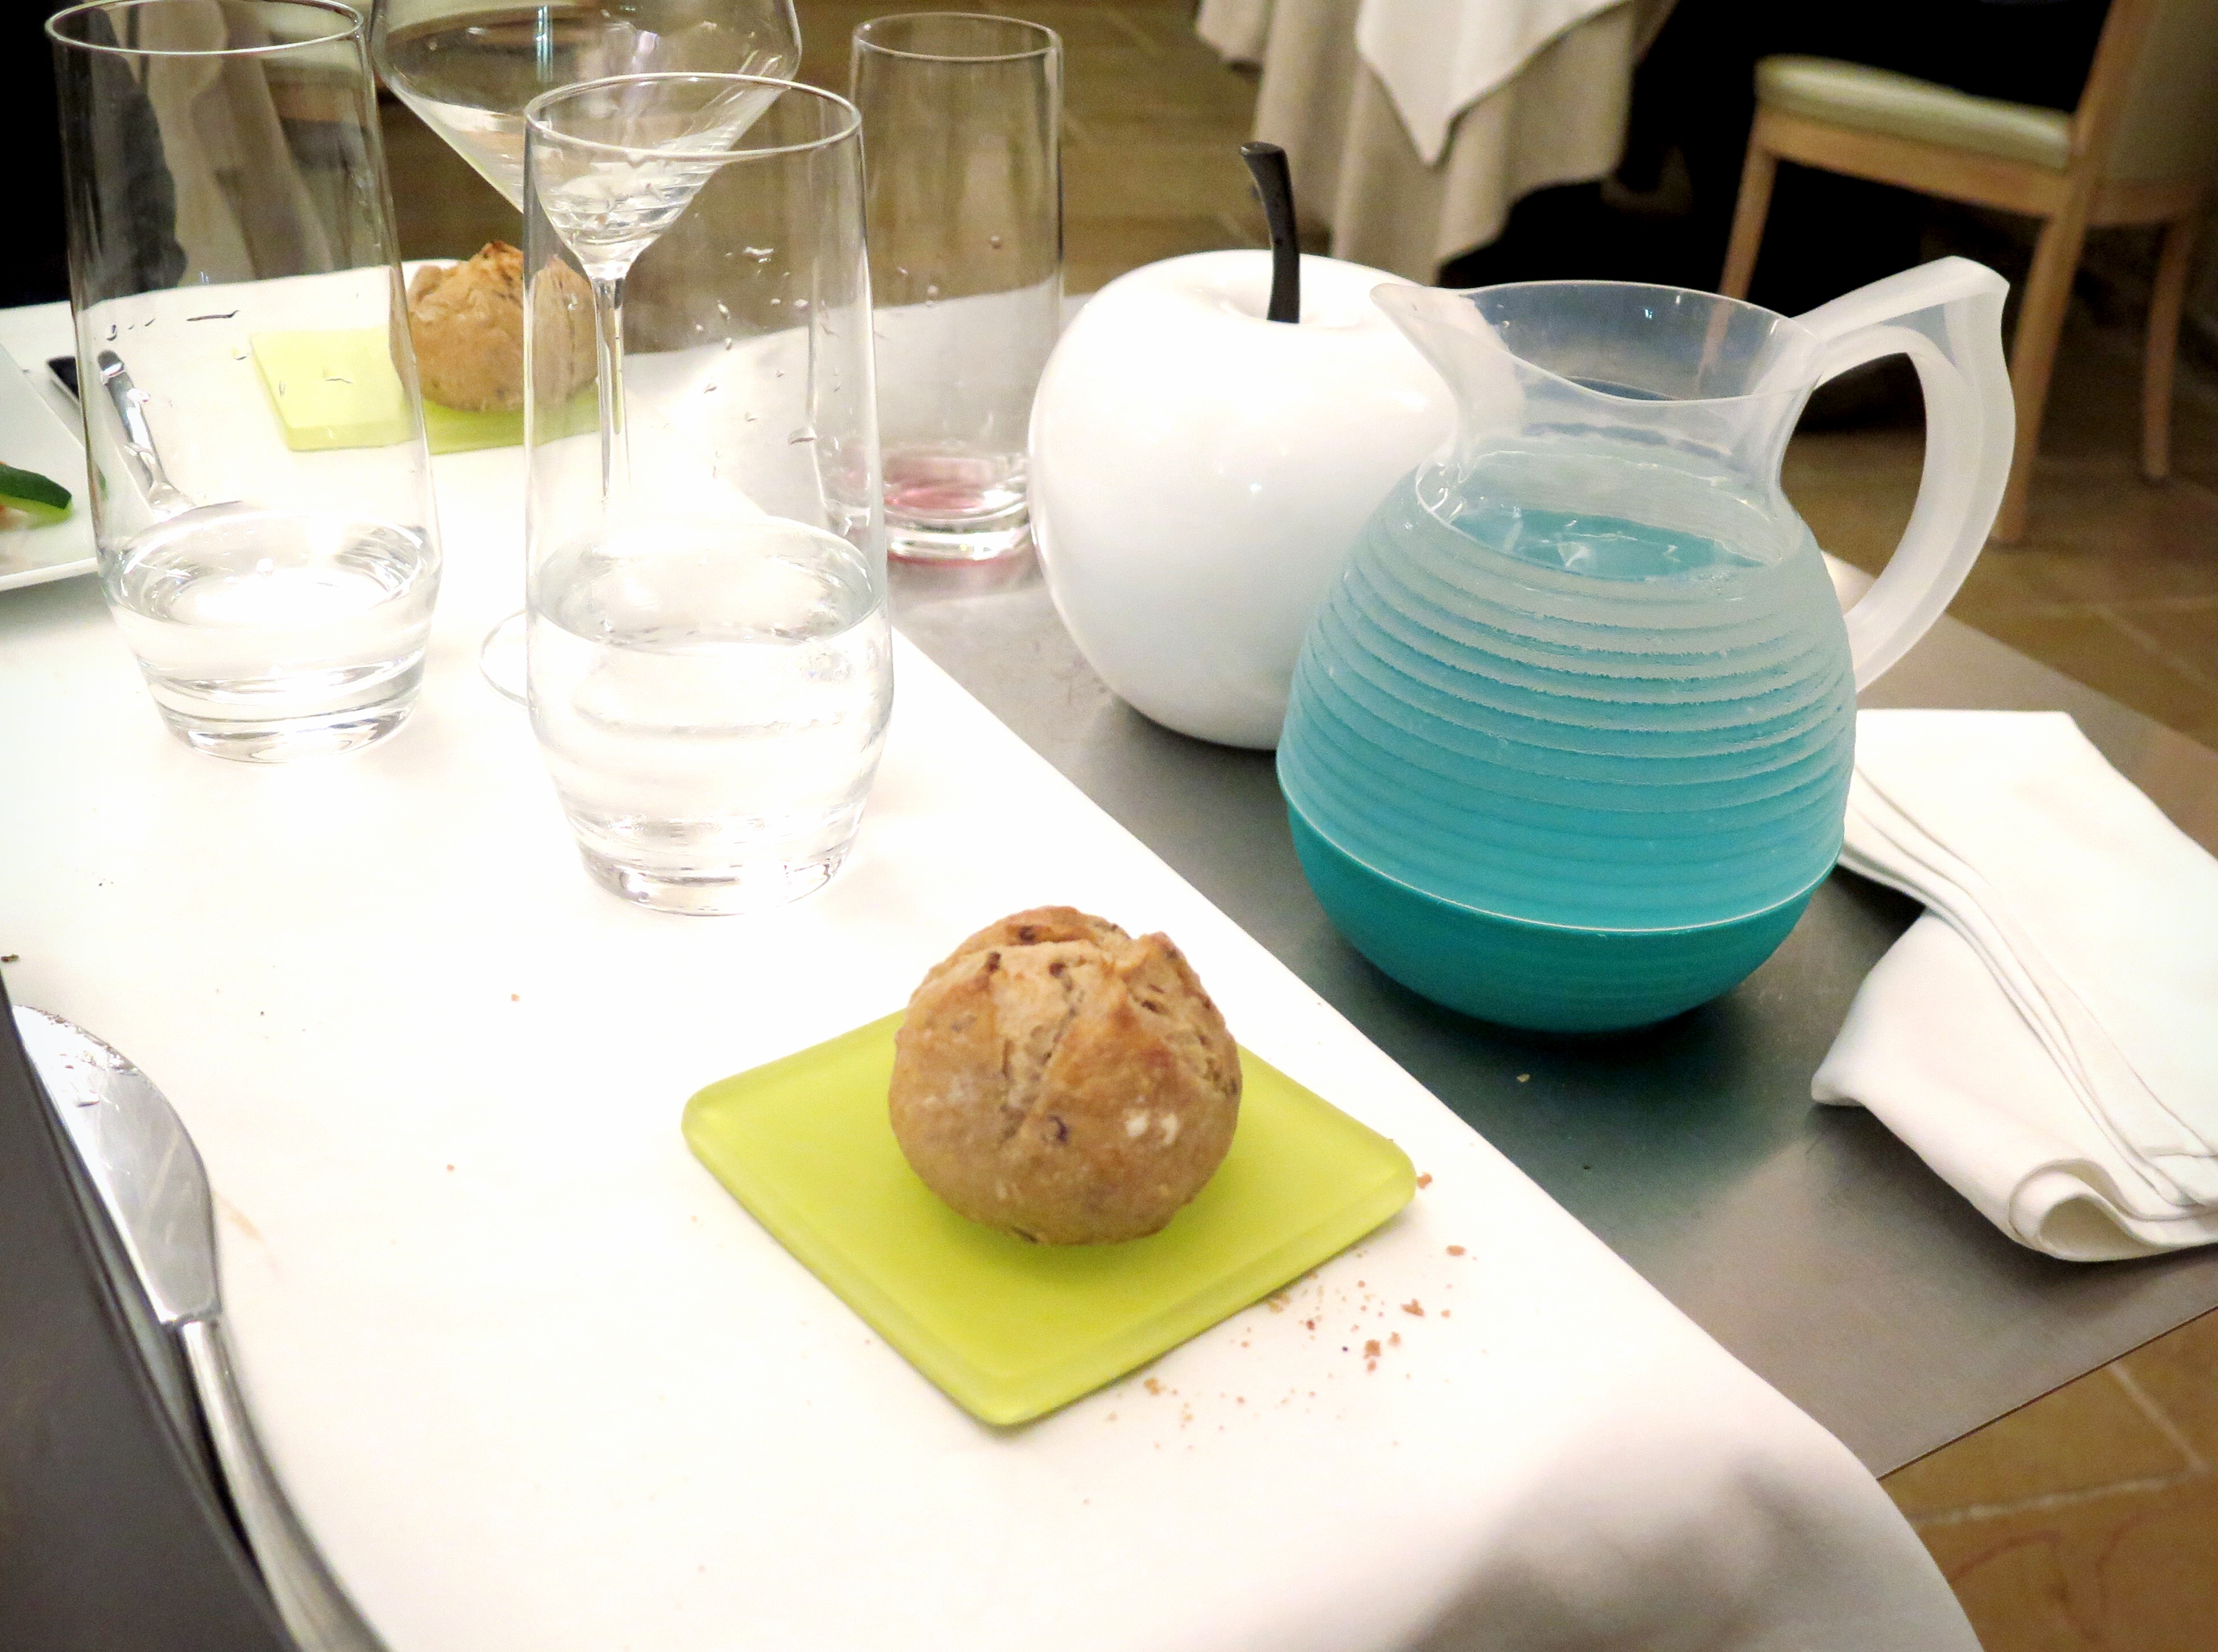 Stunning blue plastic water-jug, aside useless decorative white apple.